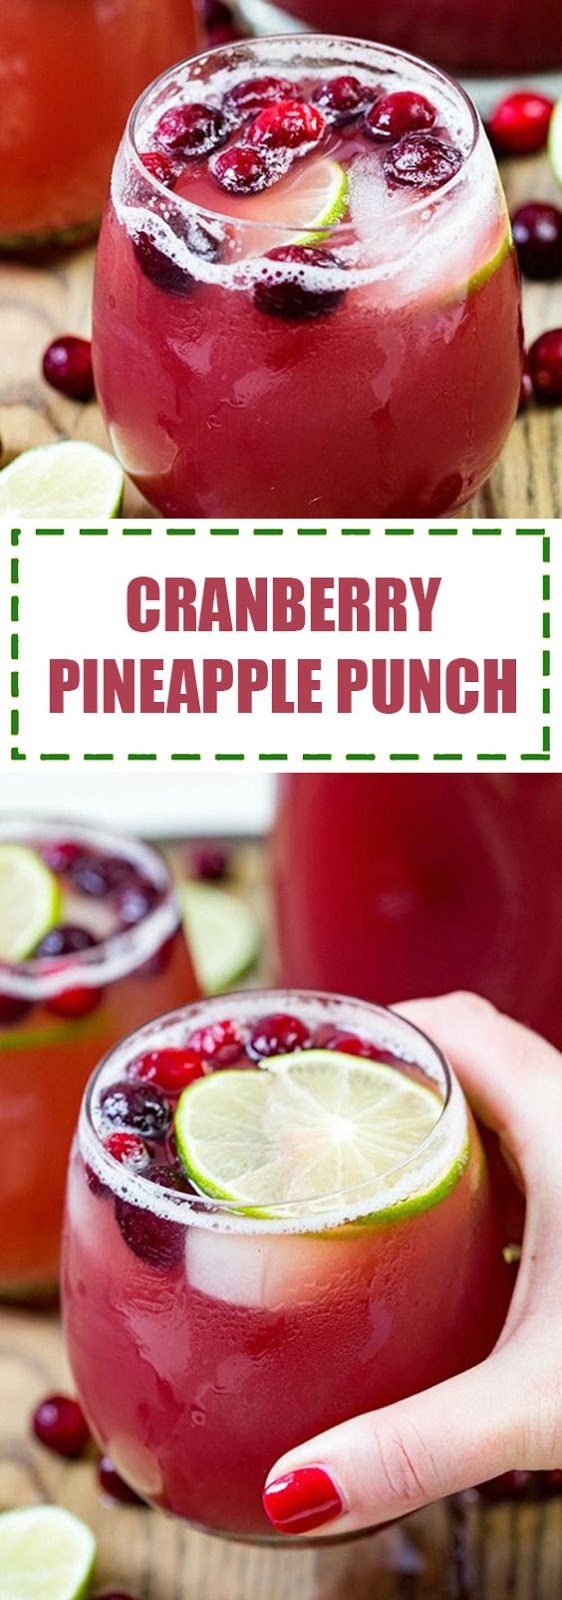 Cranberry & Pineapple Punch